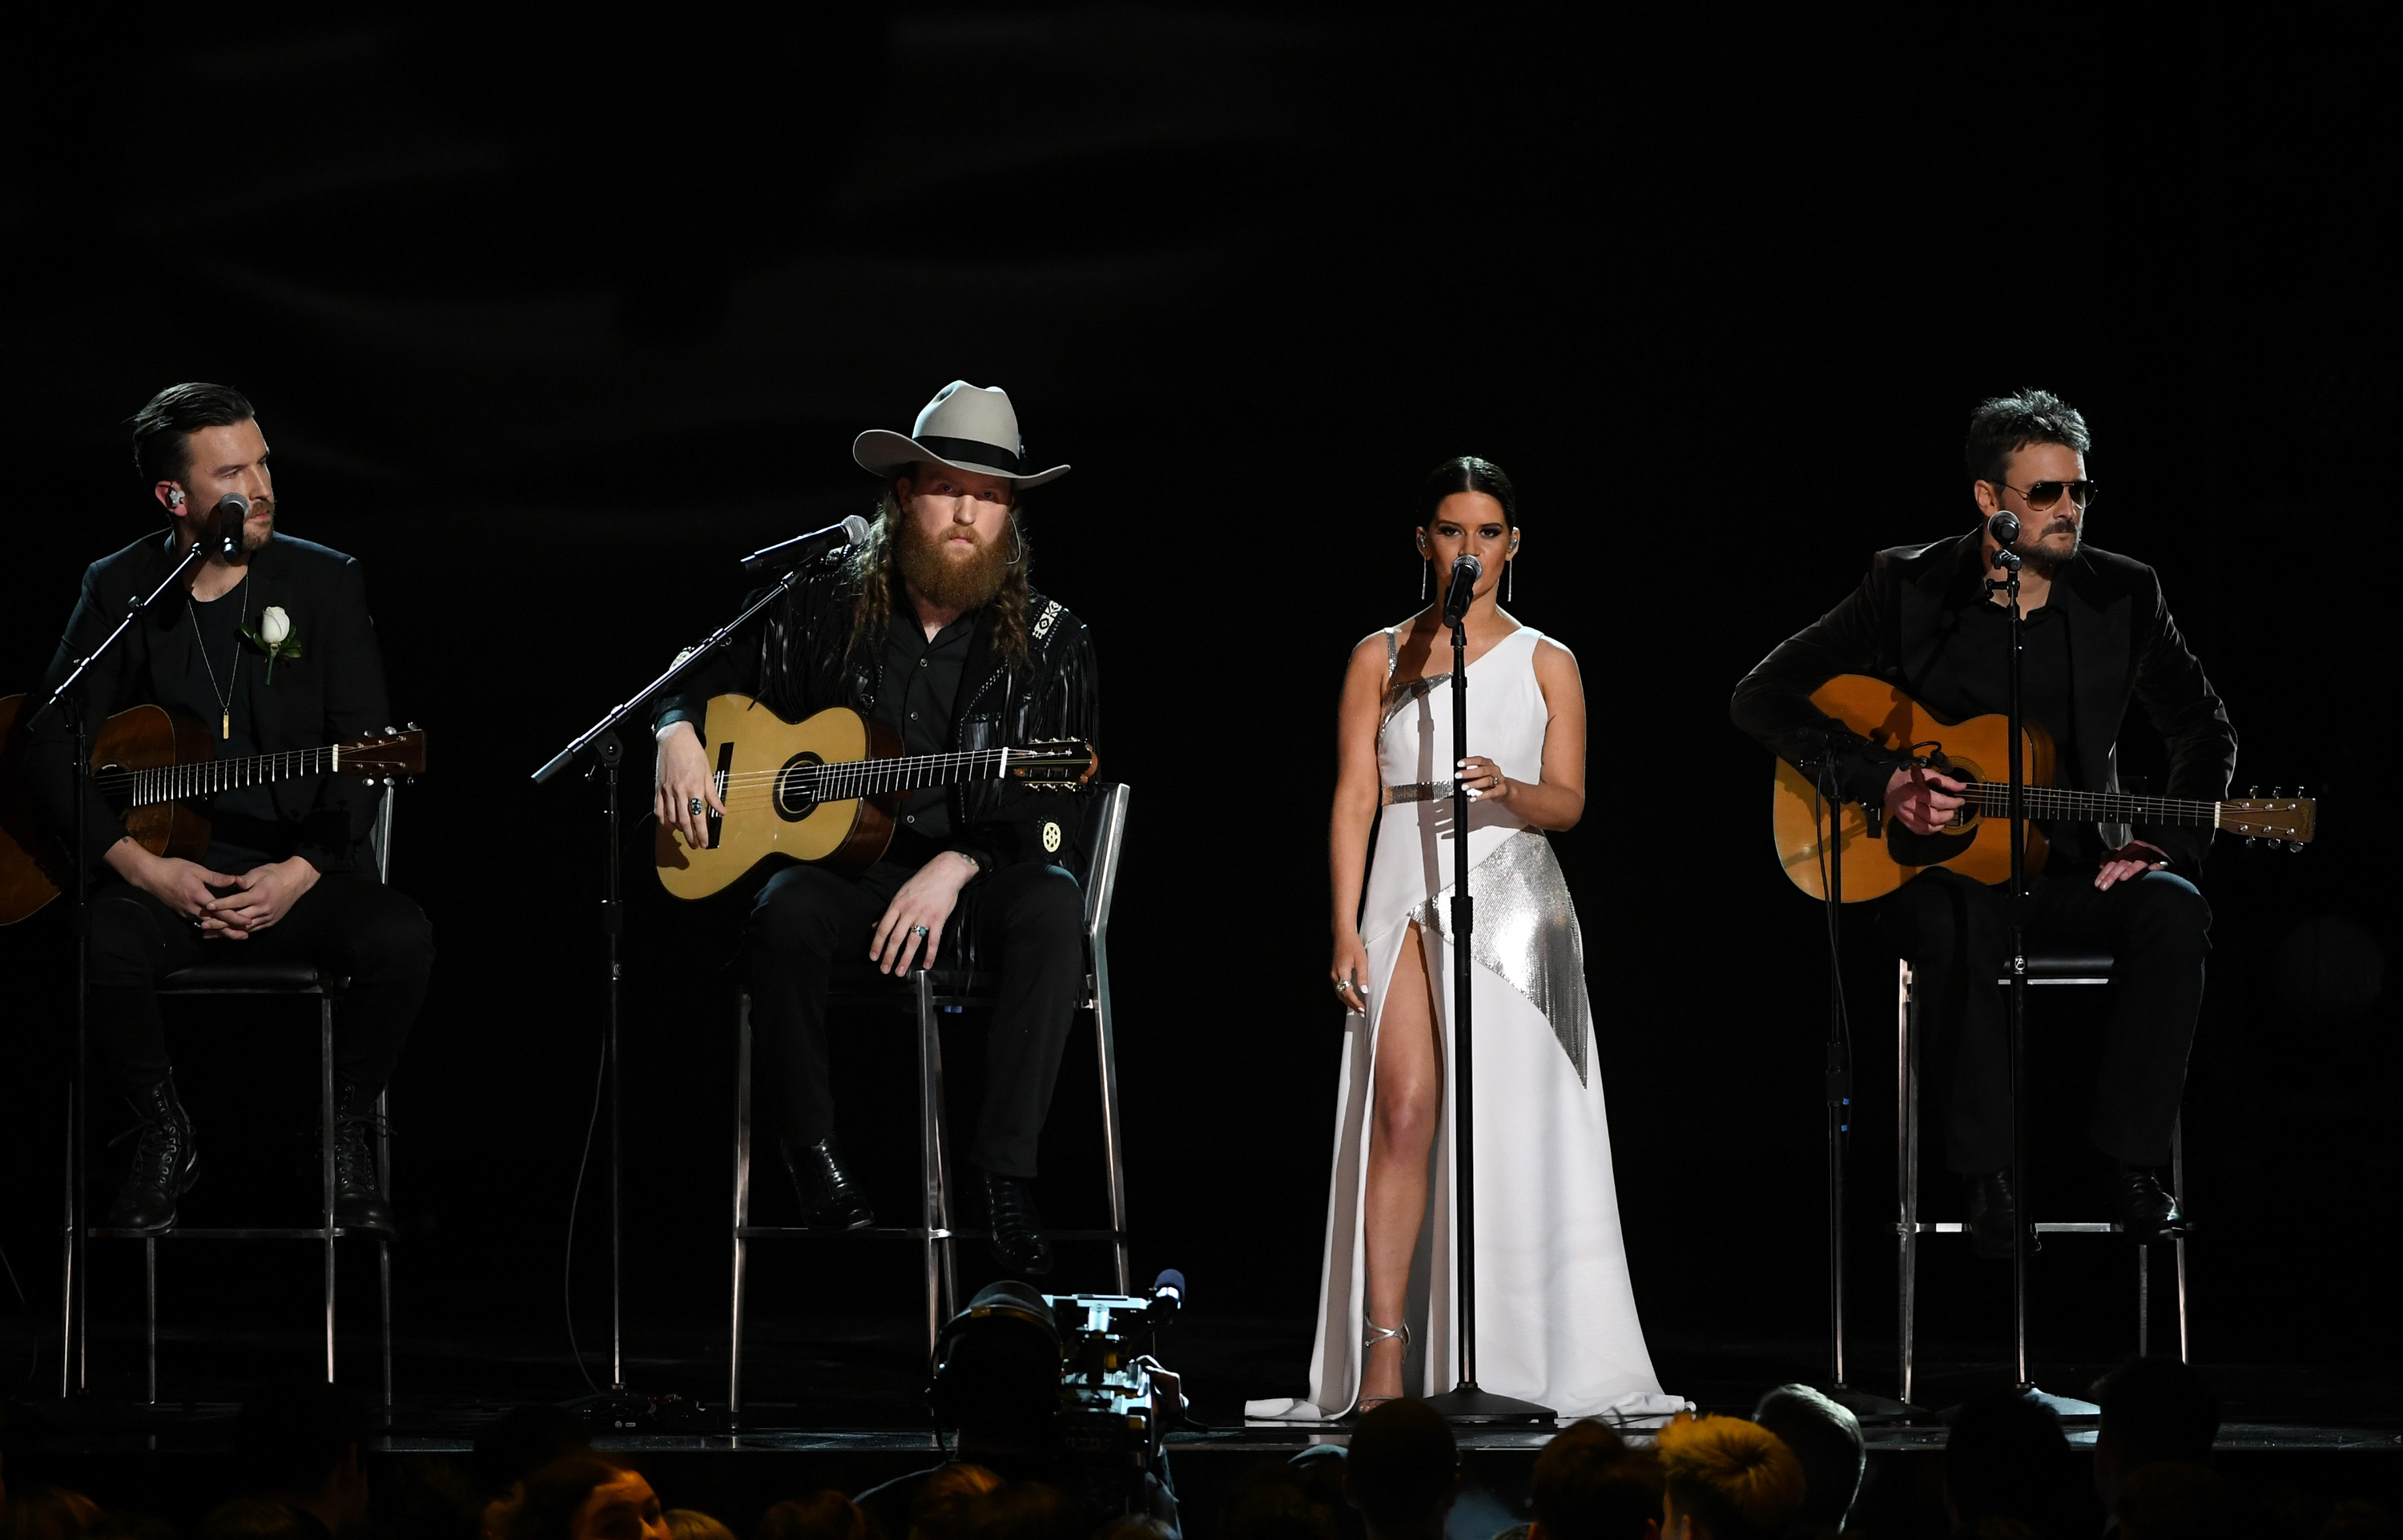 NEW YORK, NY - JANUARY 28:  (L-R) Recording artists T.J. Osborne, John Osborne, Maren Morris, and Eric Church perform onstage during the 60th Annual GRAMMY Awards at Madison Square Garden on January 28, 2018 in New York City.